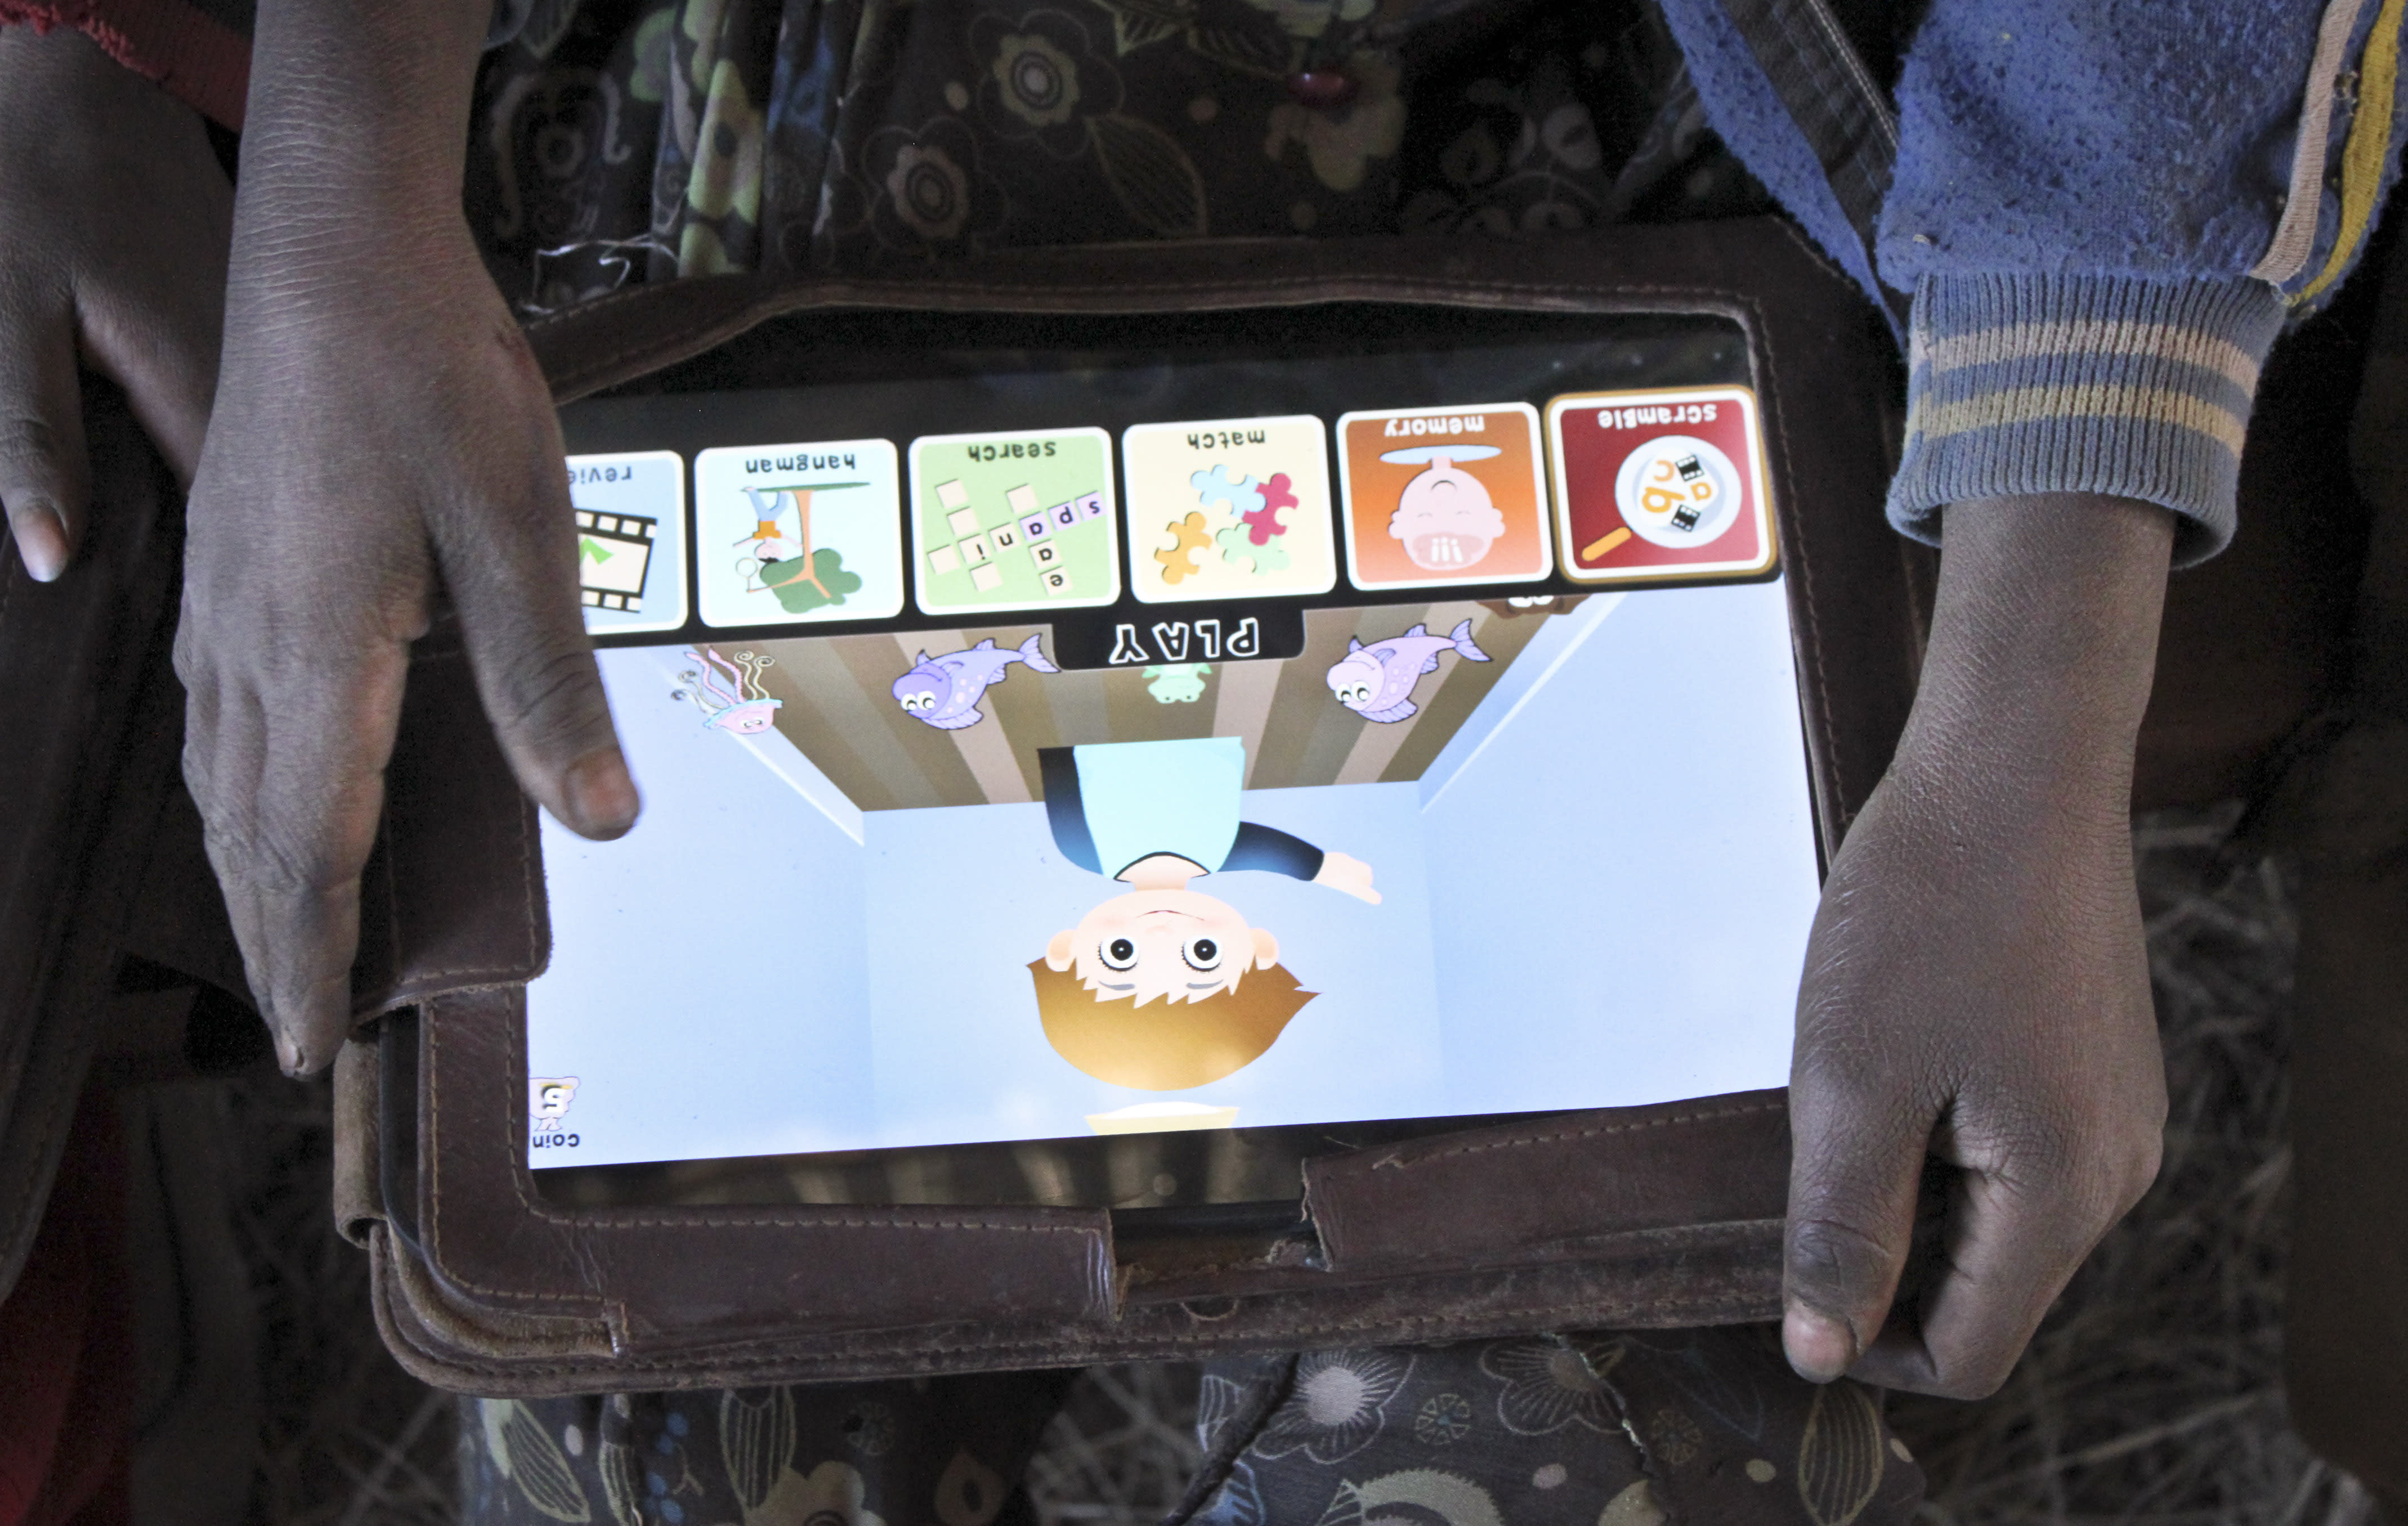 In this photo taken Tuesday, Nov. 27, 2012, a boy plays with a tablet computer given to the children by the One Laptop Per Child project in the village of Wenchi, Ethiopia. The project gave tablets to the children in the poor, illiterate village to see how much the children could teach themselves and now many kids can recite the English alphabet and spell words in English. (AP Photo/Jason Straziuso)